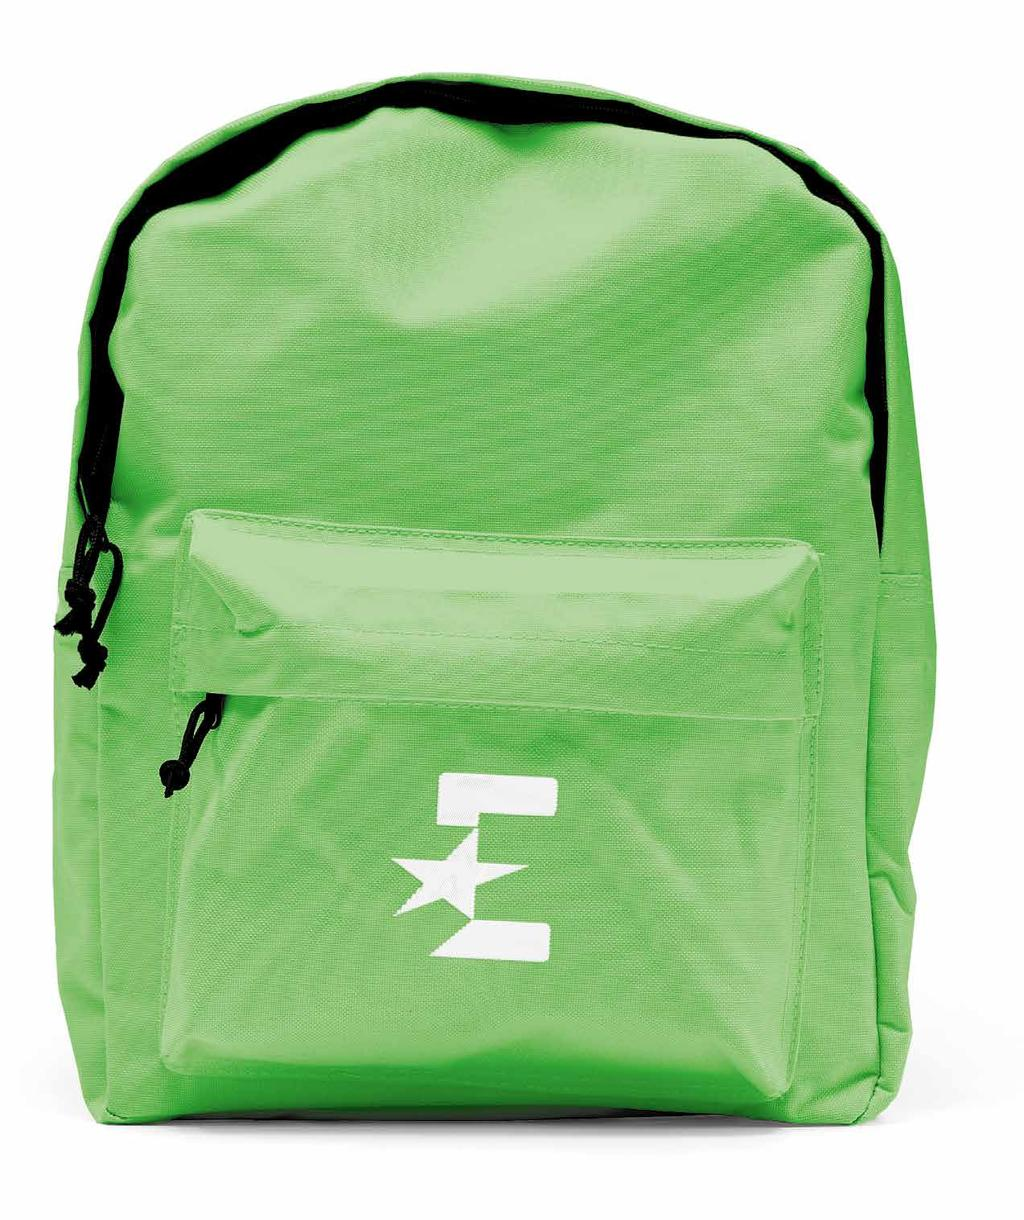 18.5 PROMOTIONAL ITEMS (viii) Backpack 91 BRANDING: Wordmark & Monogram POSITIONING: Front Pocket: Monogram is visually centered. (see pp.